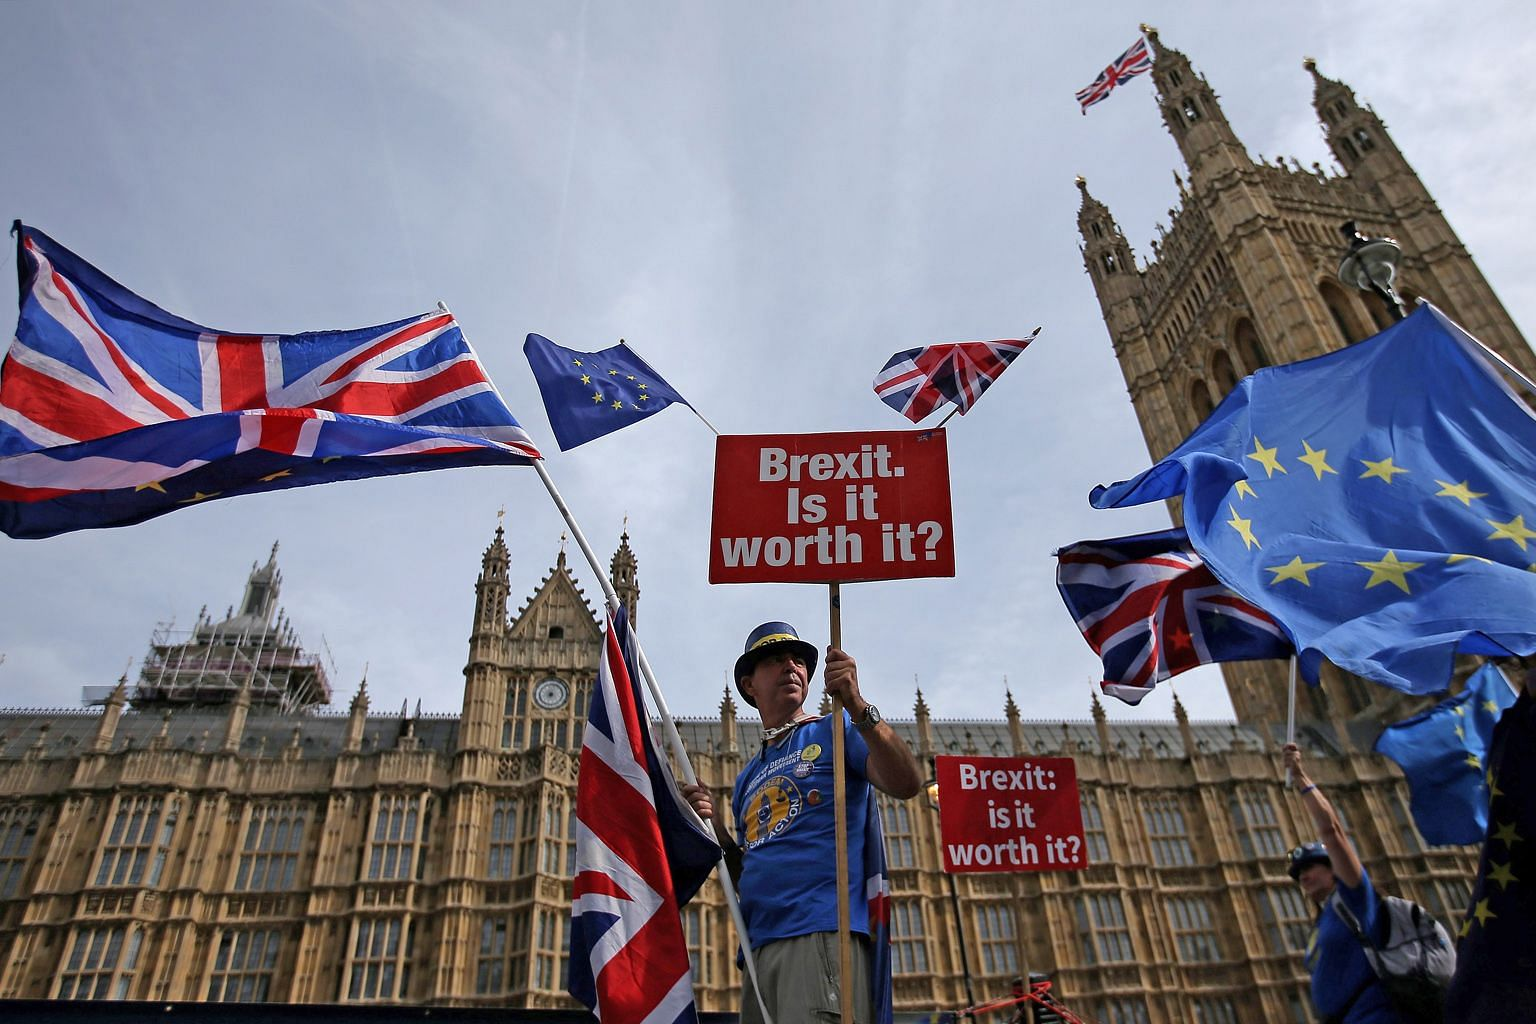 A demonstrator making his point while flying the British and European Union flags outside the Houses of Parliament in London earlier this month - six months before Brexit officially takes effect.